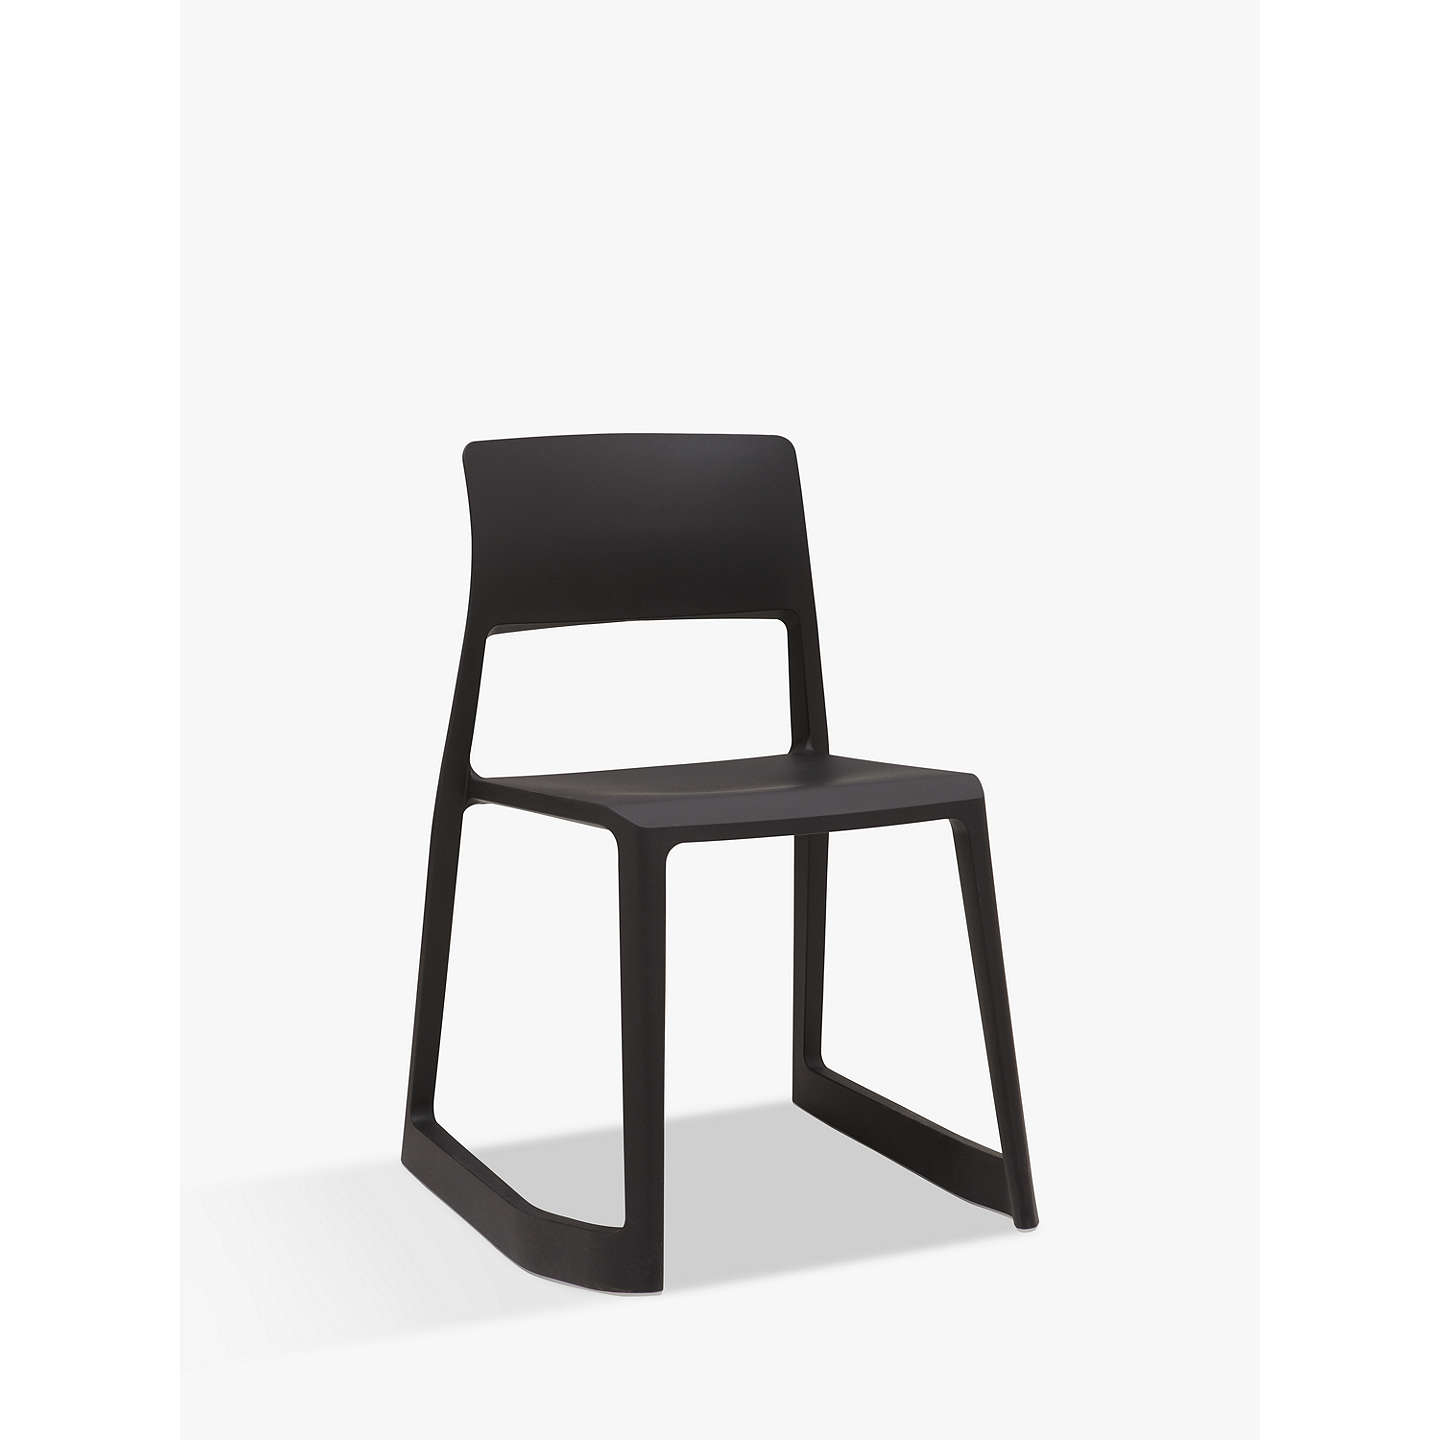 vitra tip ton chair black at john lewis. Black Bedroom Furniture Sets. Home Design Ideas